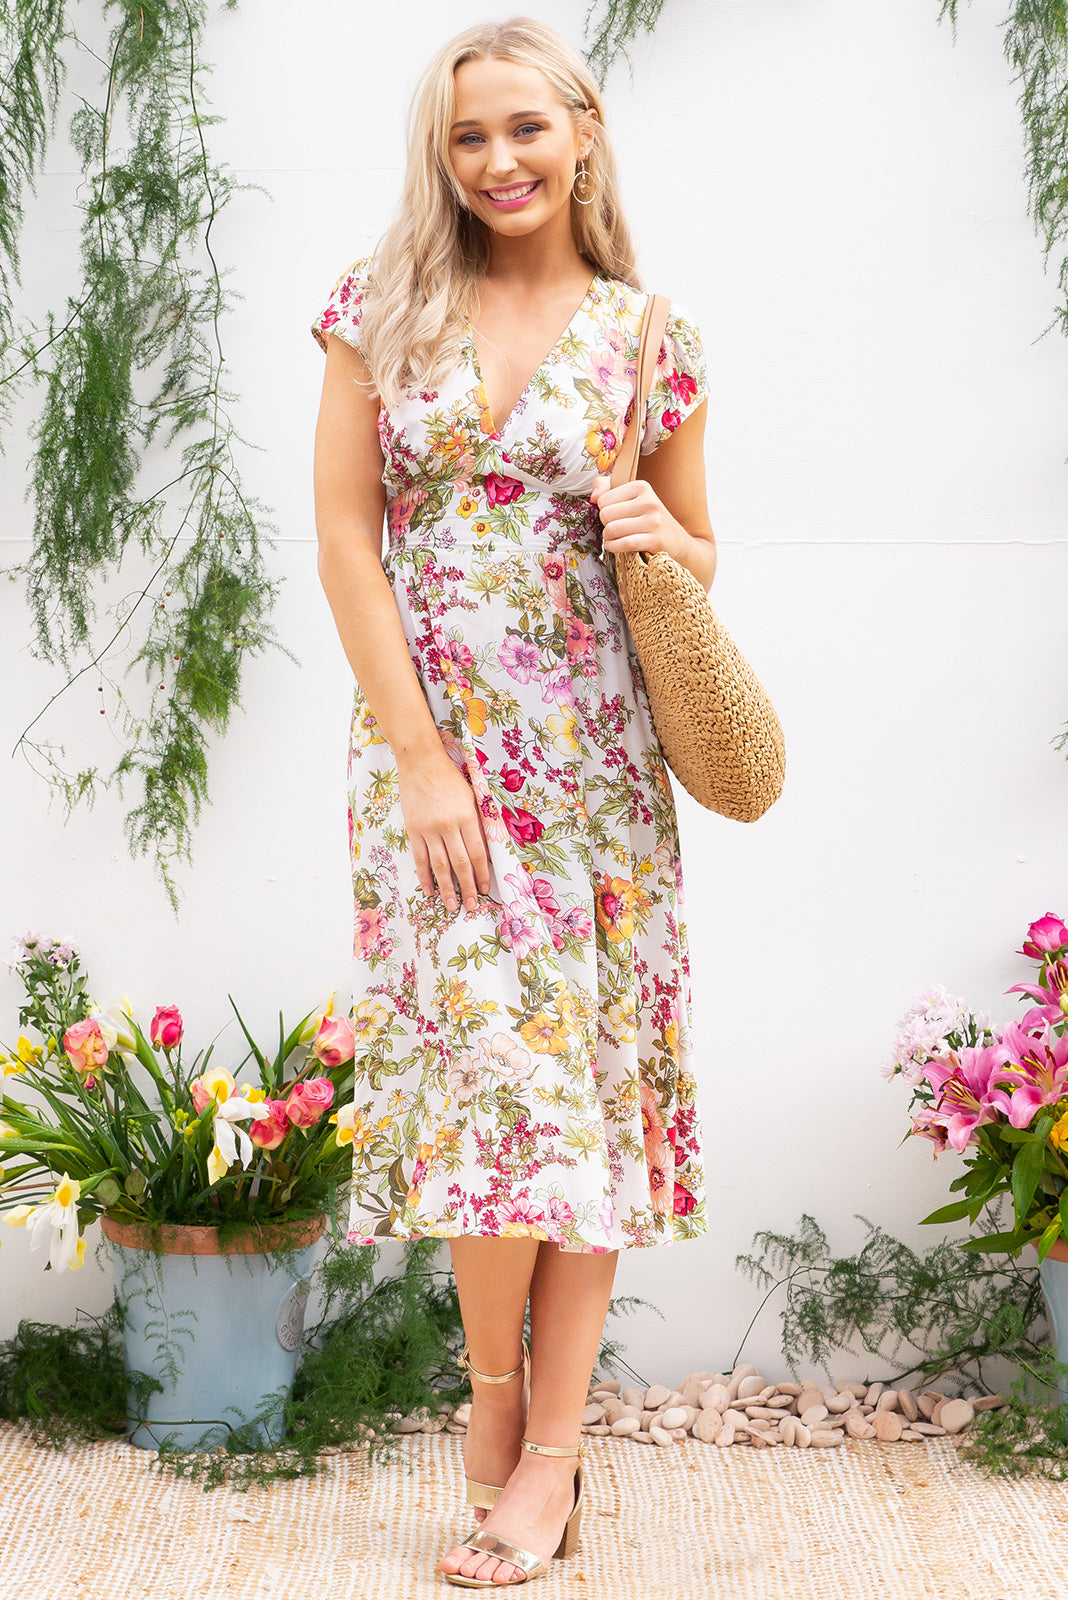 Lizzie Fleur Jolie Cream Midi dress features a vintage inspired fitted basque waist and elasticated waist with a cap sleeve and deep v neck the fabric is a soft woven rayon in a warm cream bouquet floral print